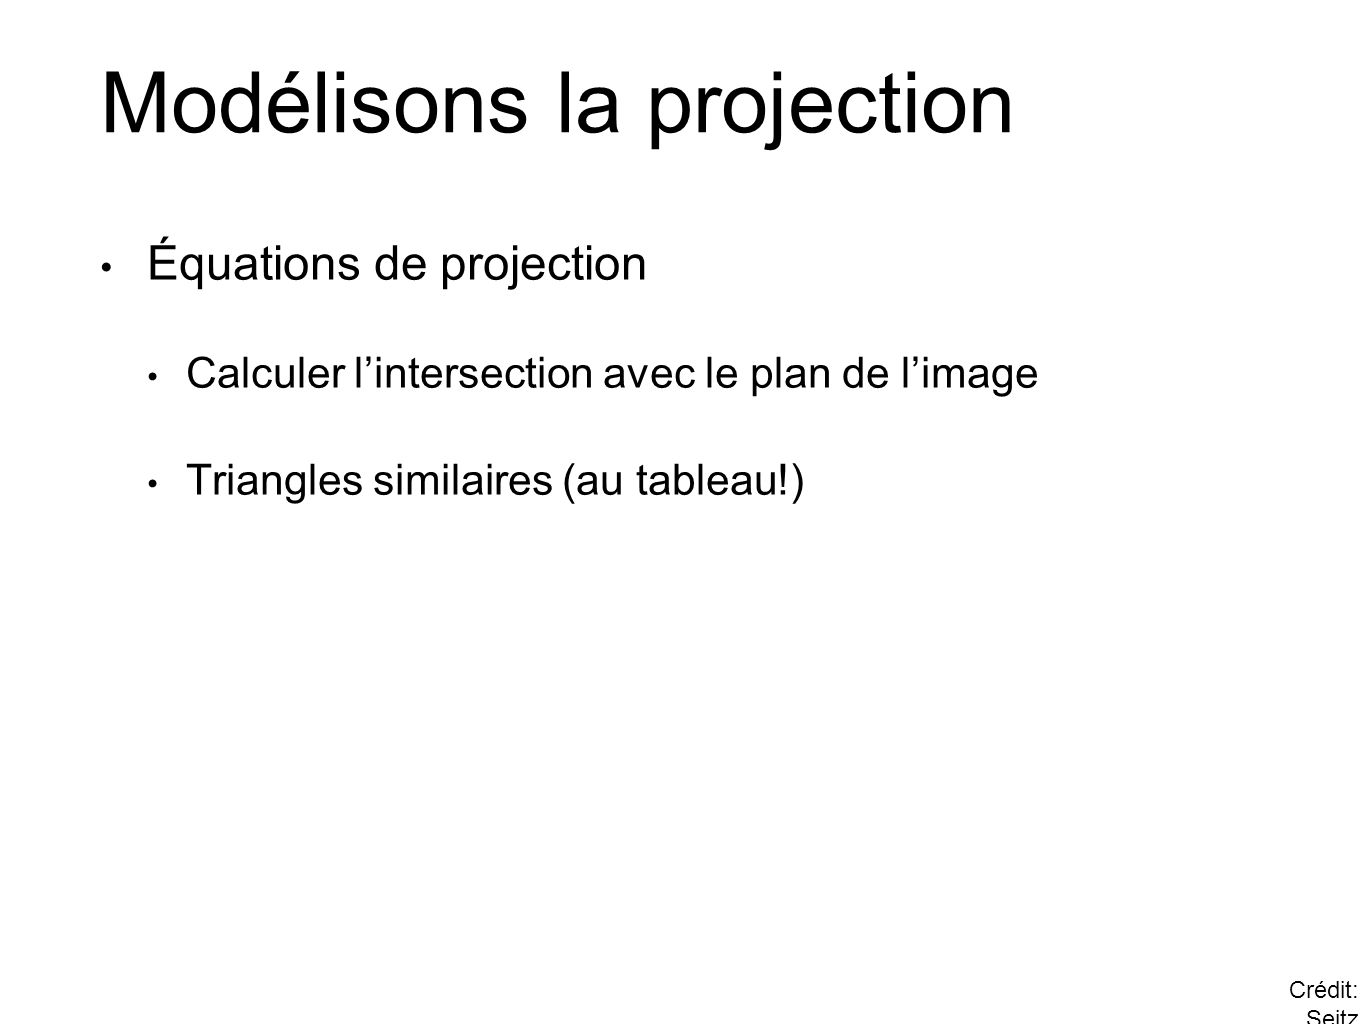 Modélisons la projection